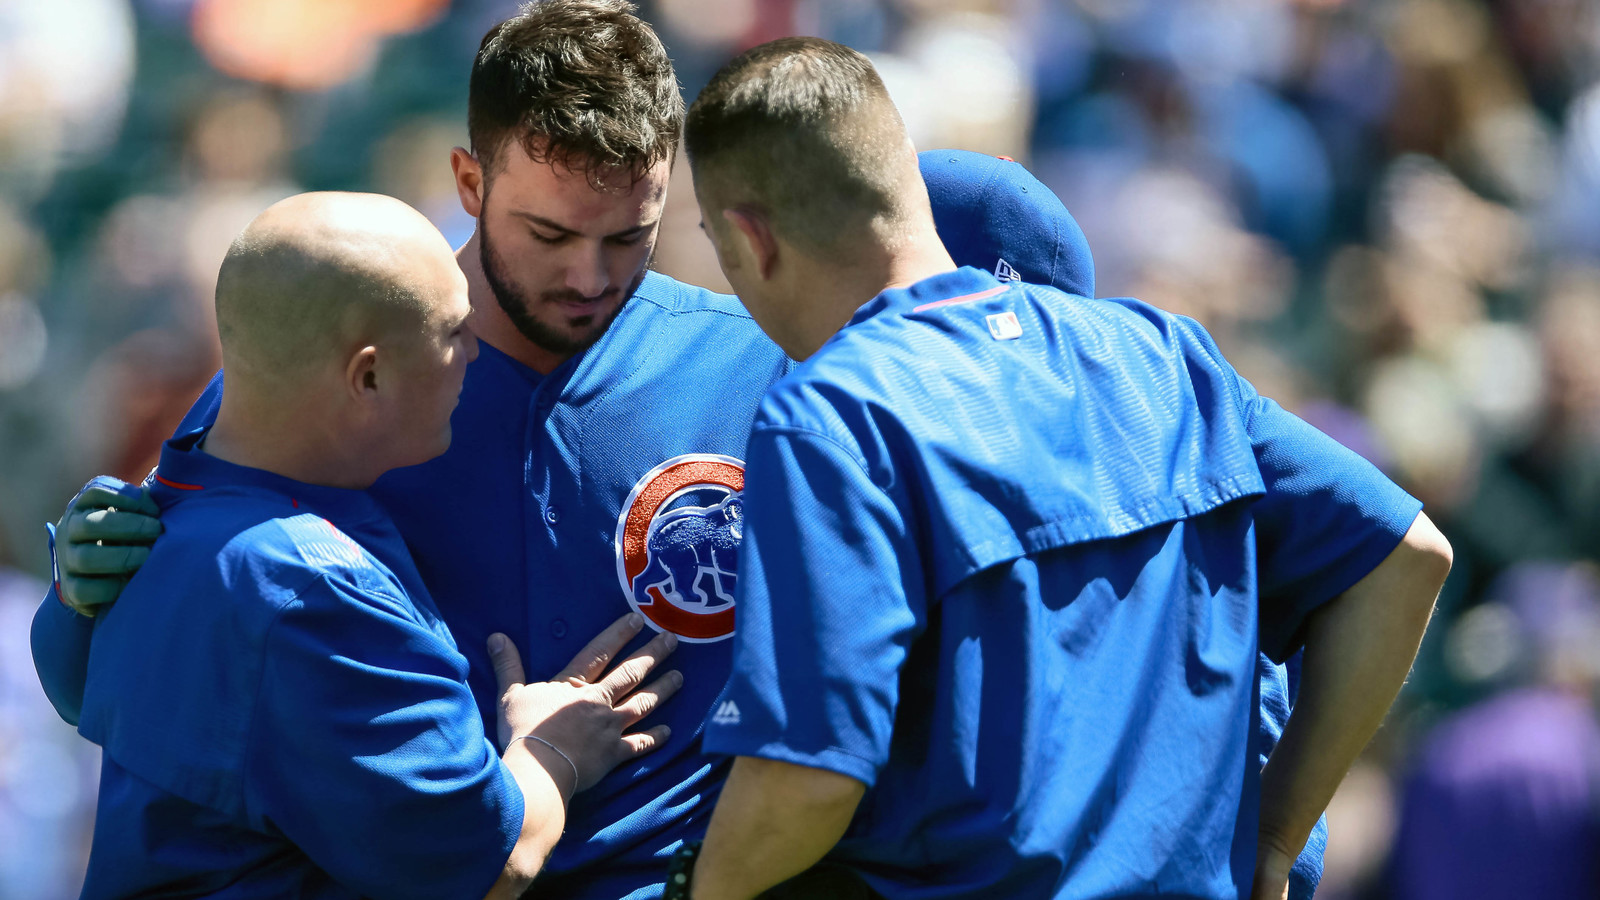 Cubs' Kris Bryant hit in head with pitch, leaves game vs. Rockies